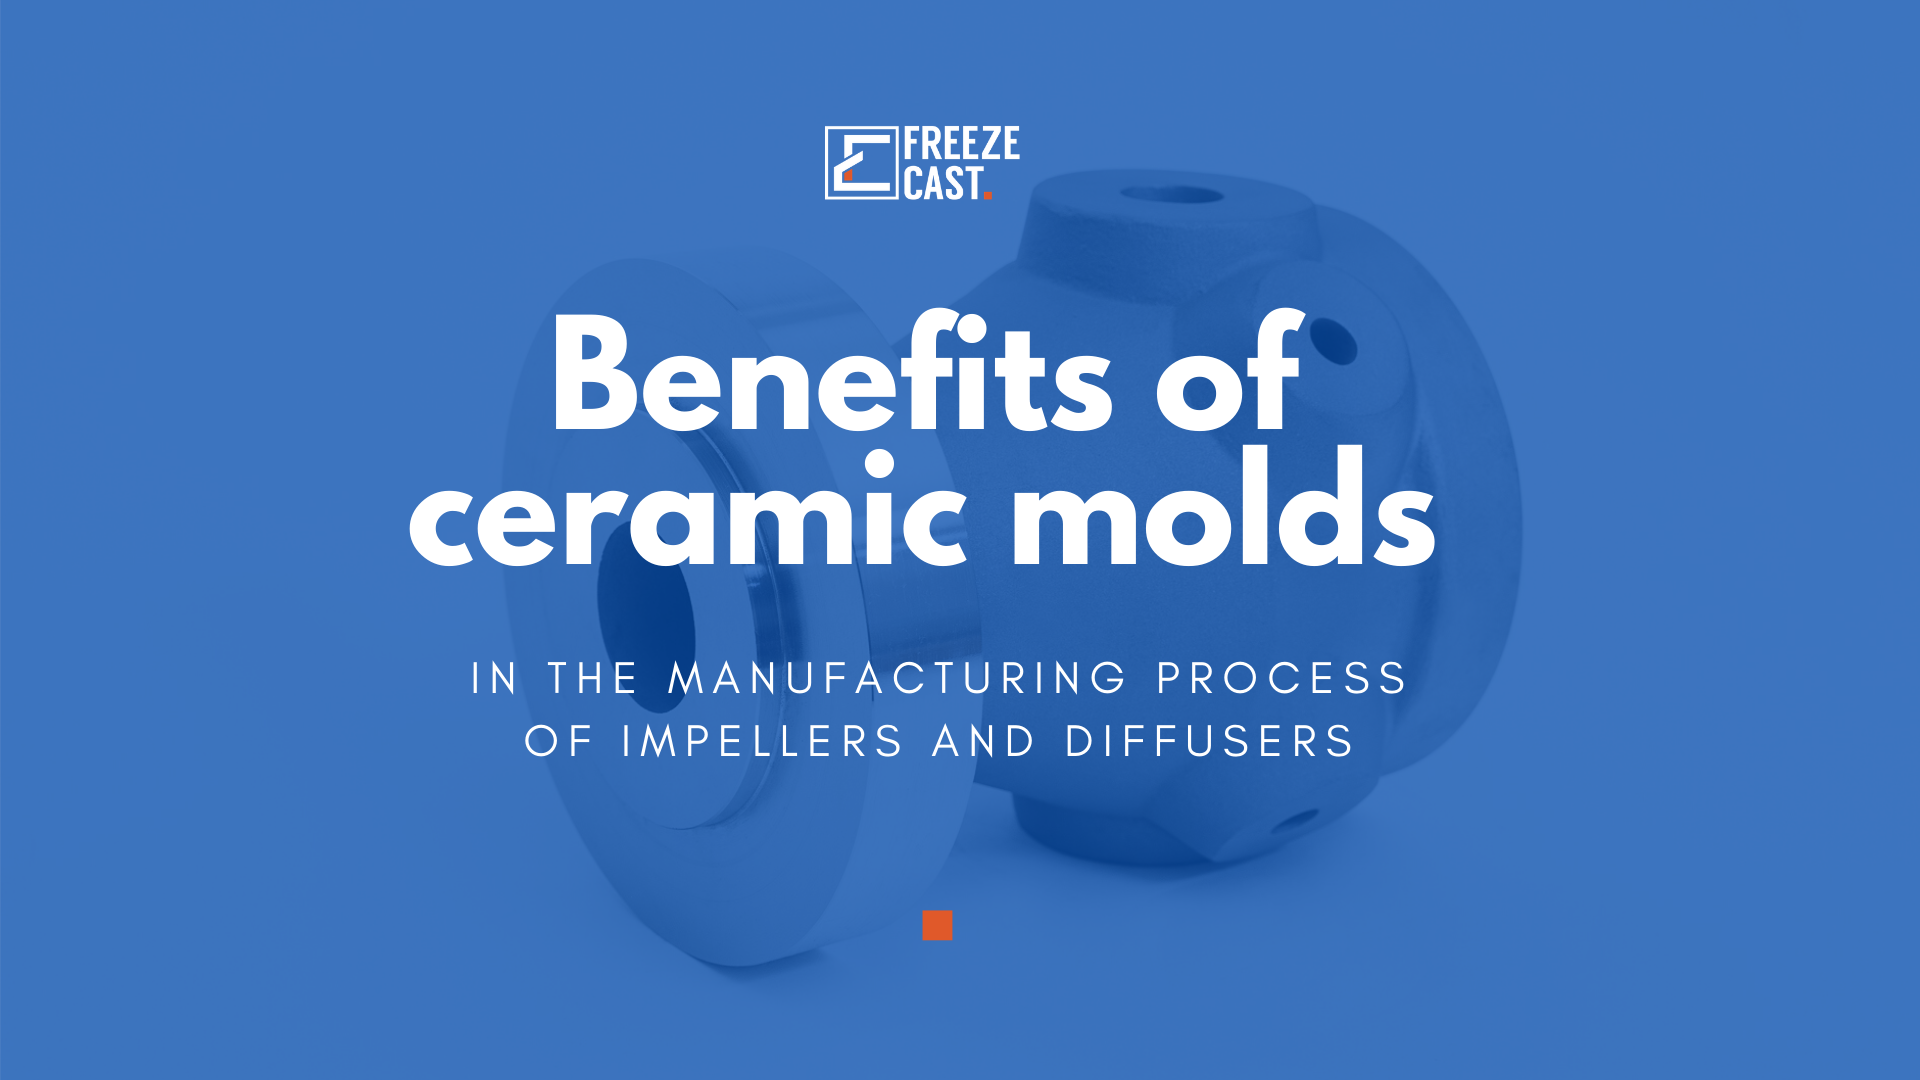 Benefits of ceramic molds in the manufacturing process of impellers and diffusers